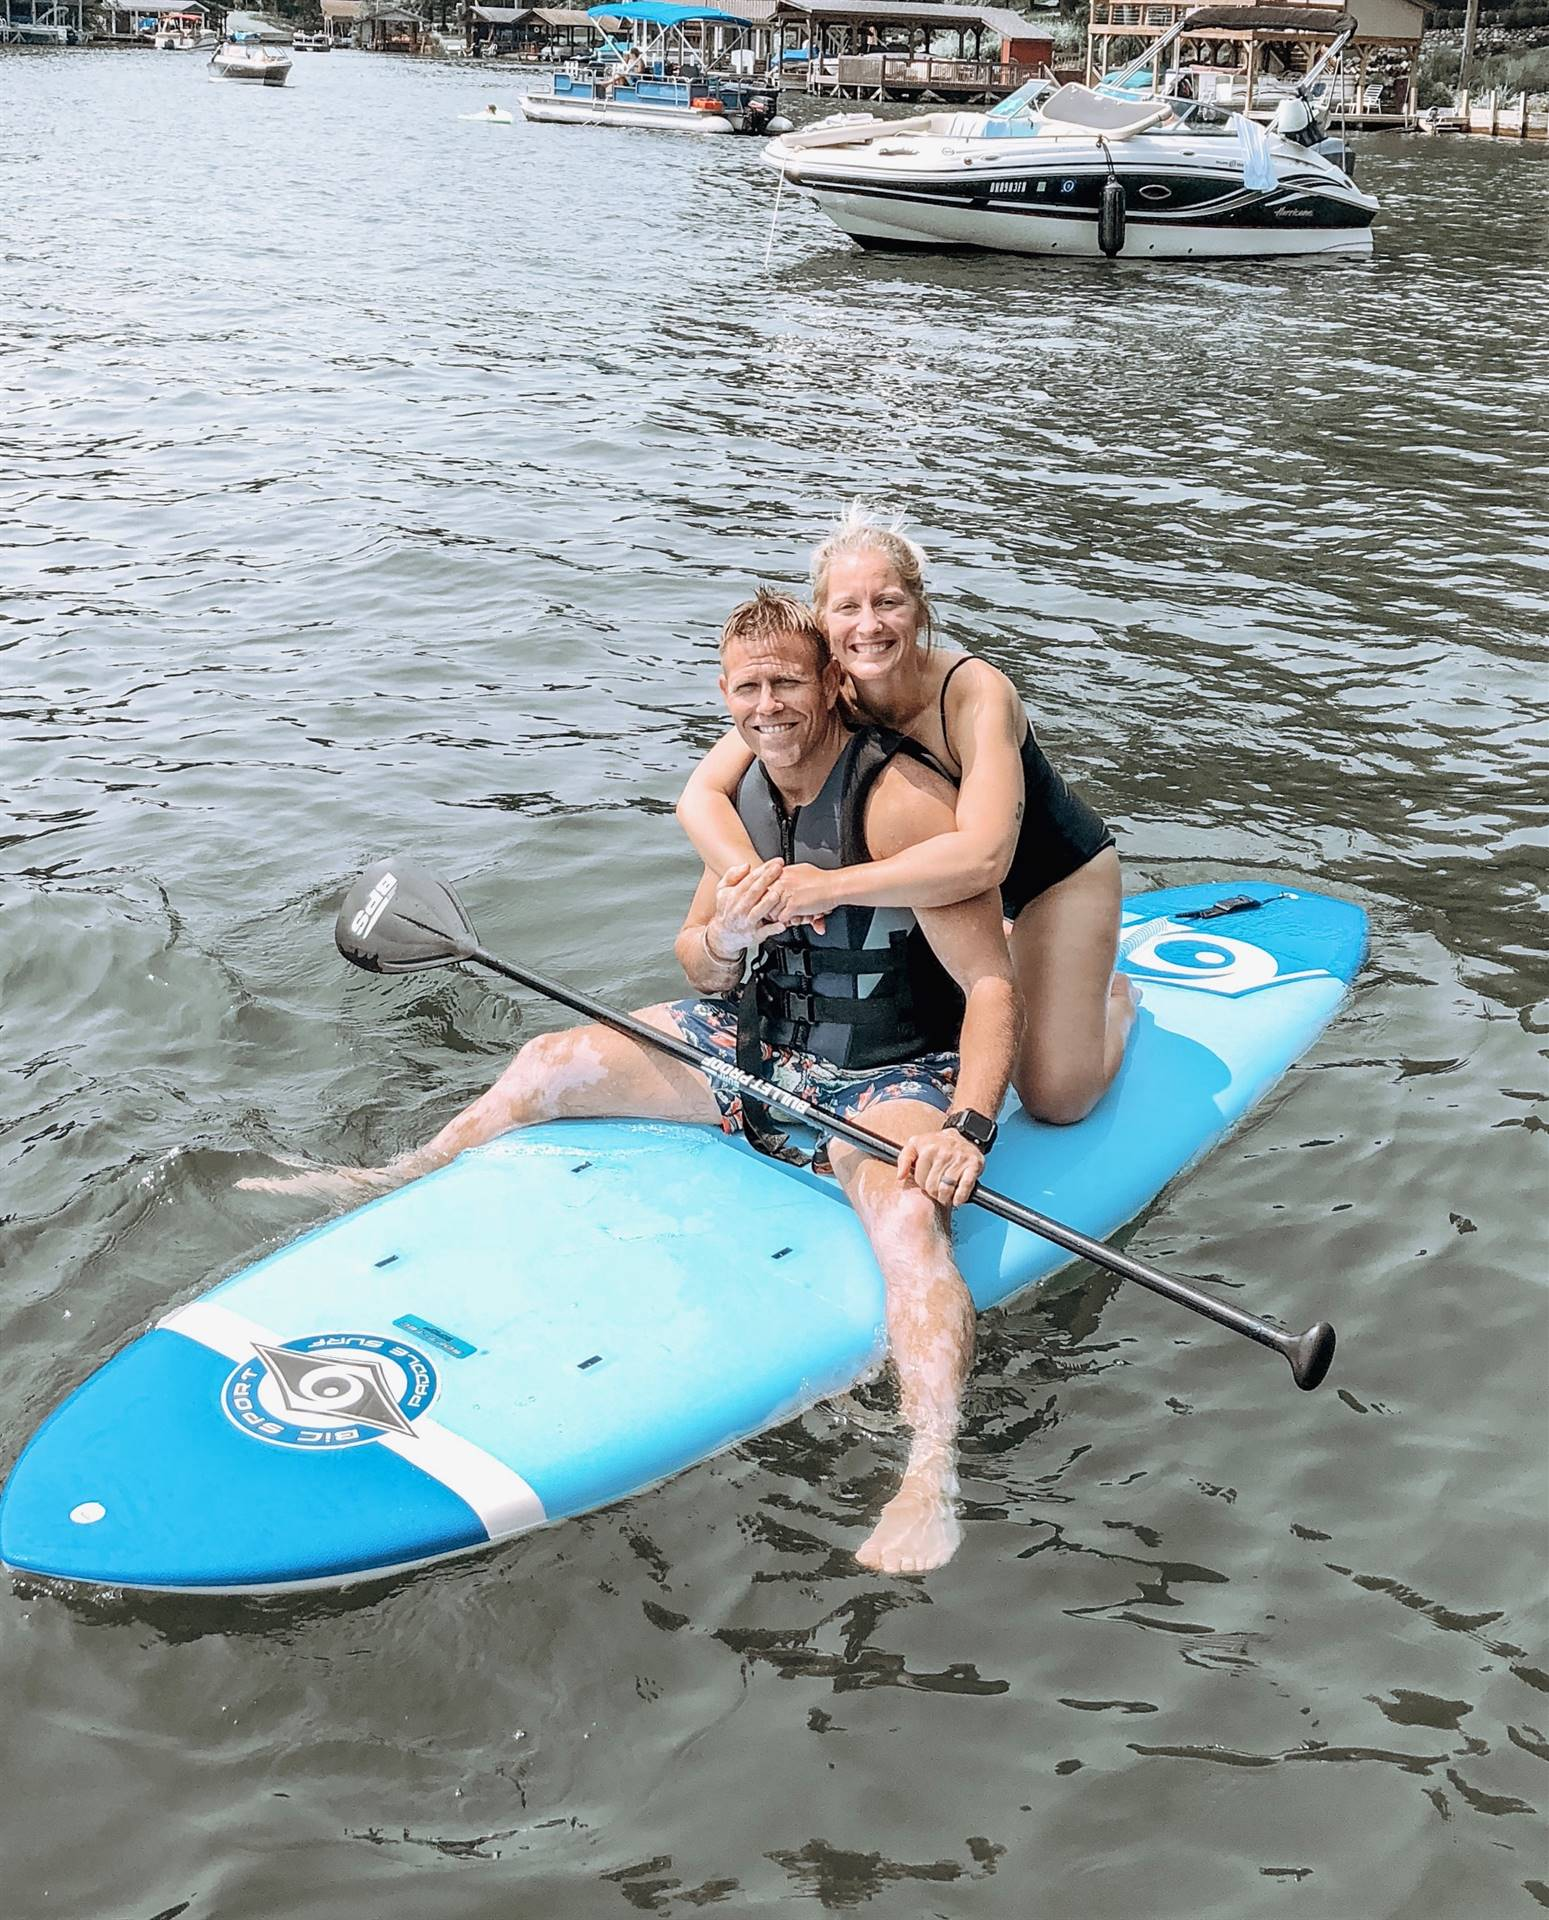 My wife and I paddleboarding